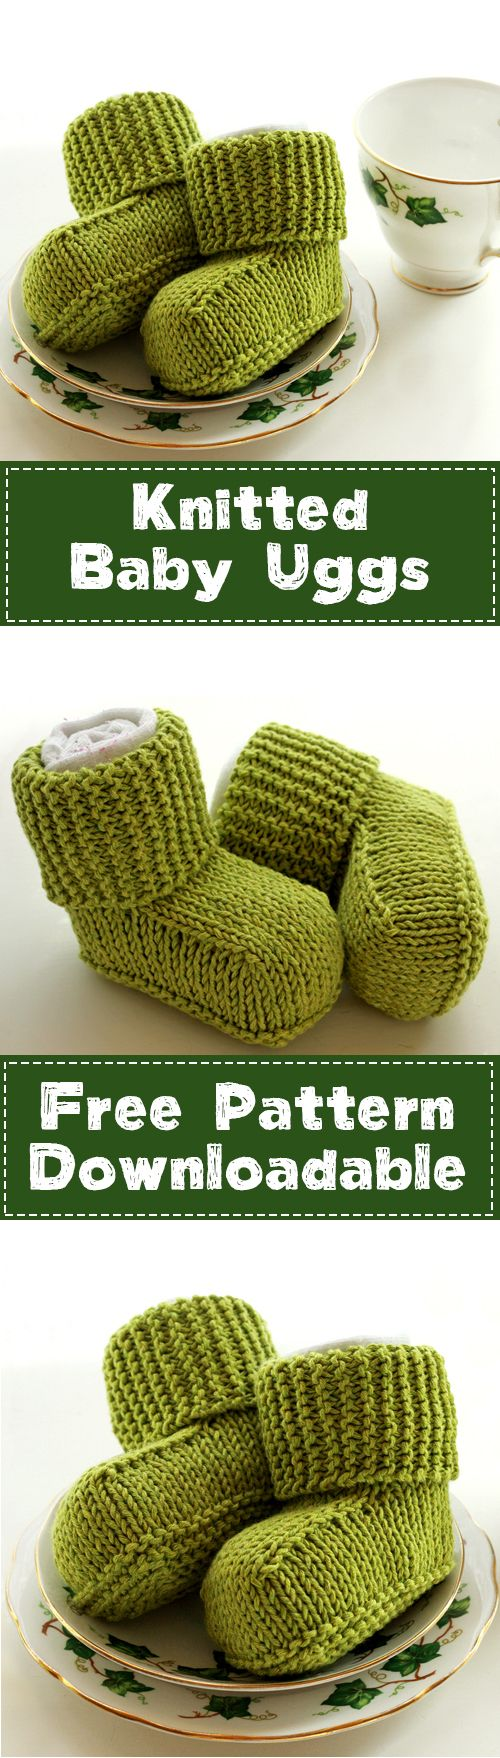 Free Knitting Pattern: Knitted Baby Uggs | Pinterest | Baby uggs ...